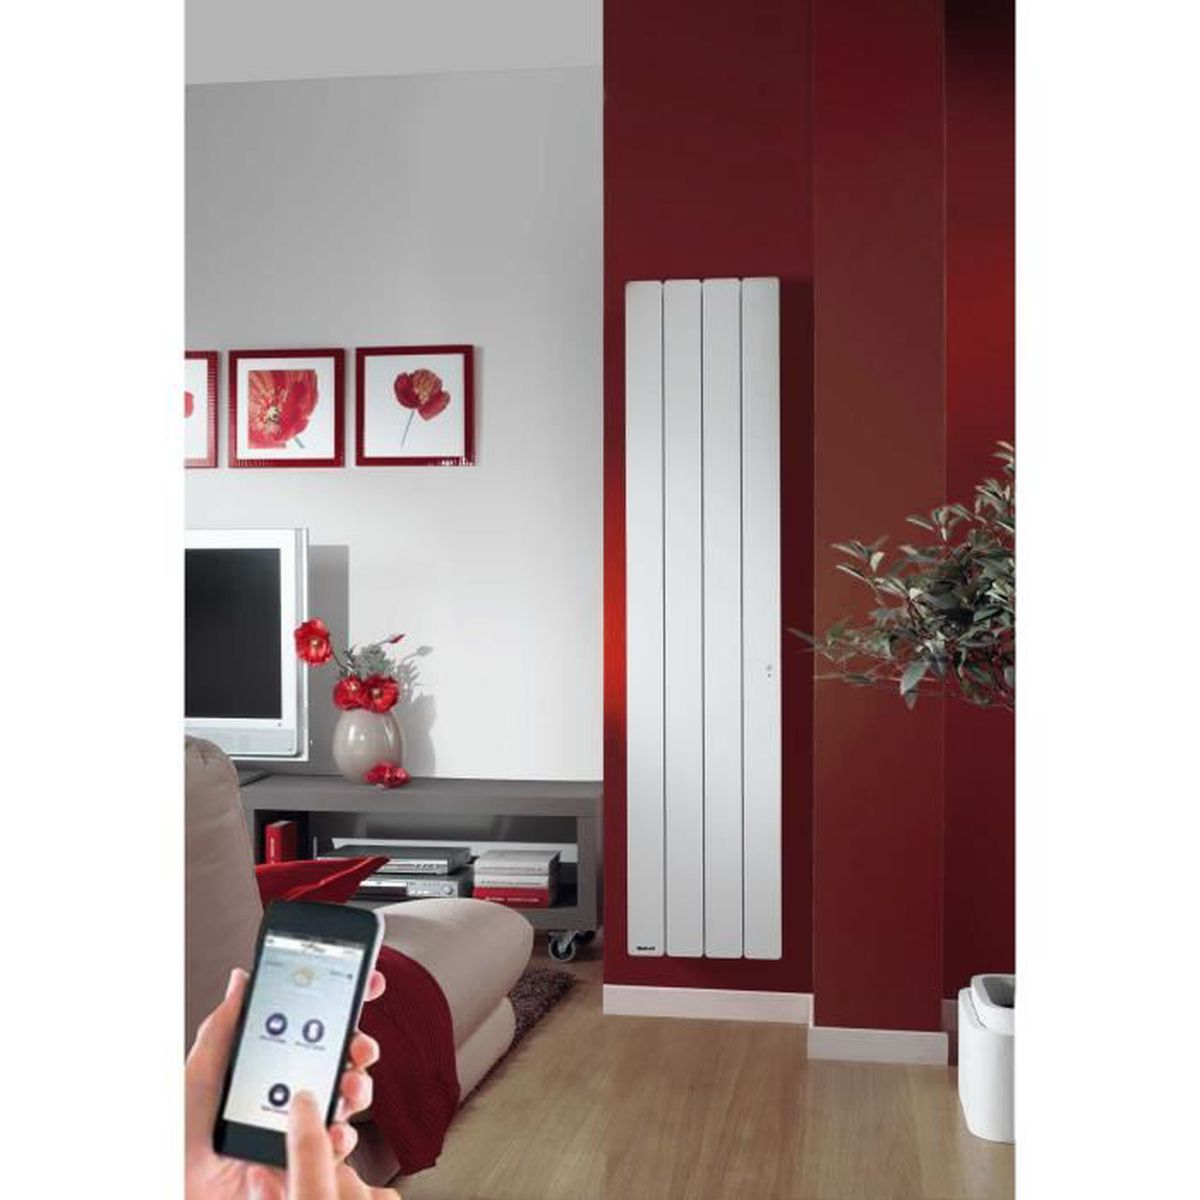 radiateur inertie fonte noirot bellagio smart ecocontrol vertical 1000 w achat vente. Black Bedroom Furniture Sets. Home Design Ideas